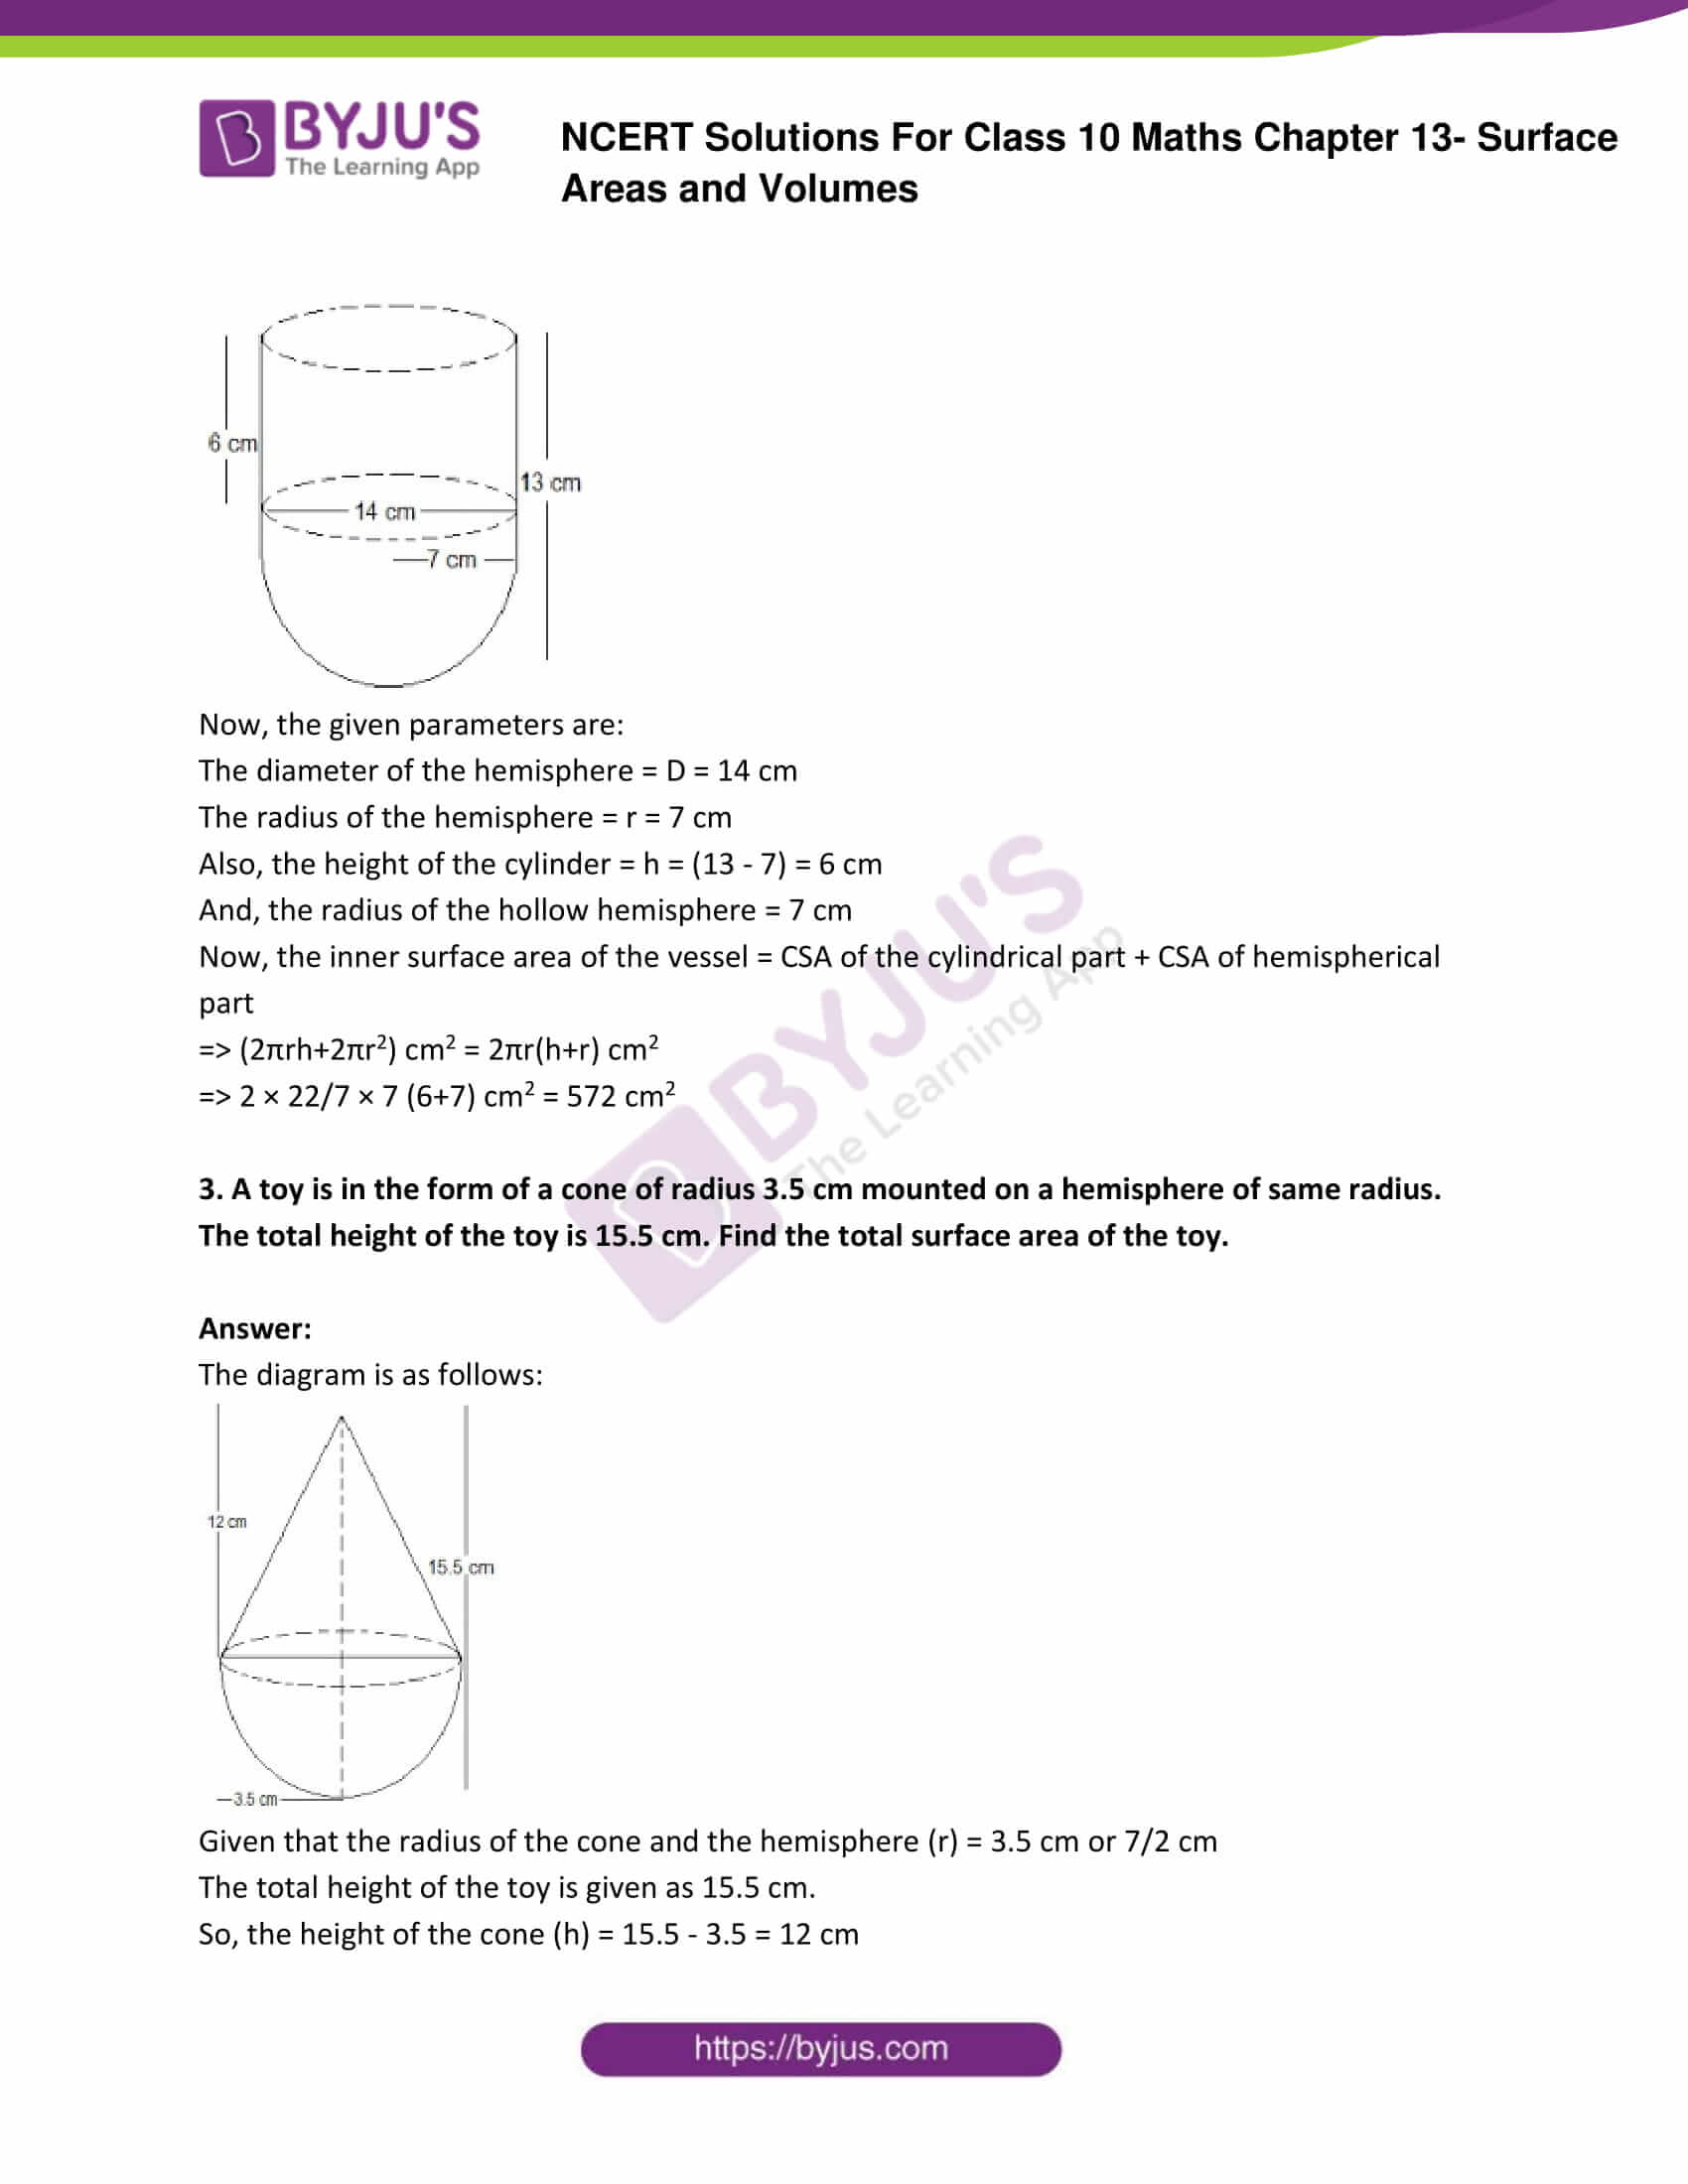 NCERT Solutions Class 10 Maths Chapter 13 Surface Areas and Volumes Part 02